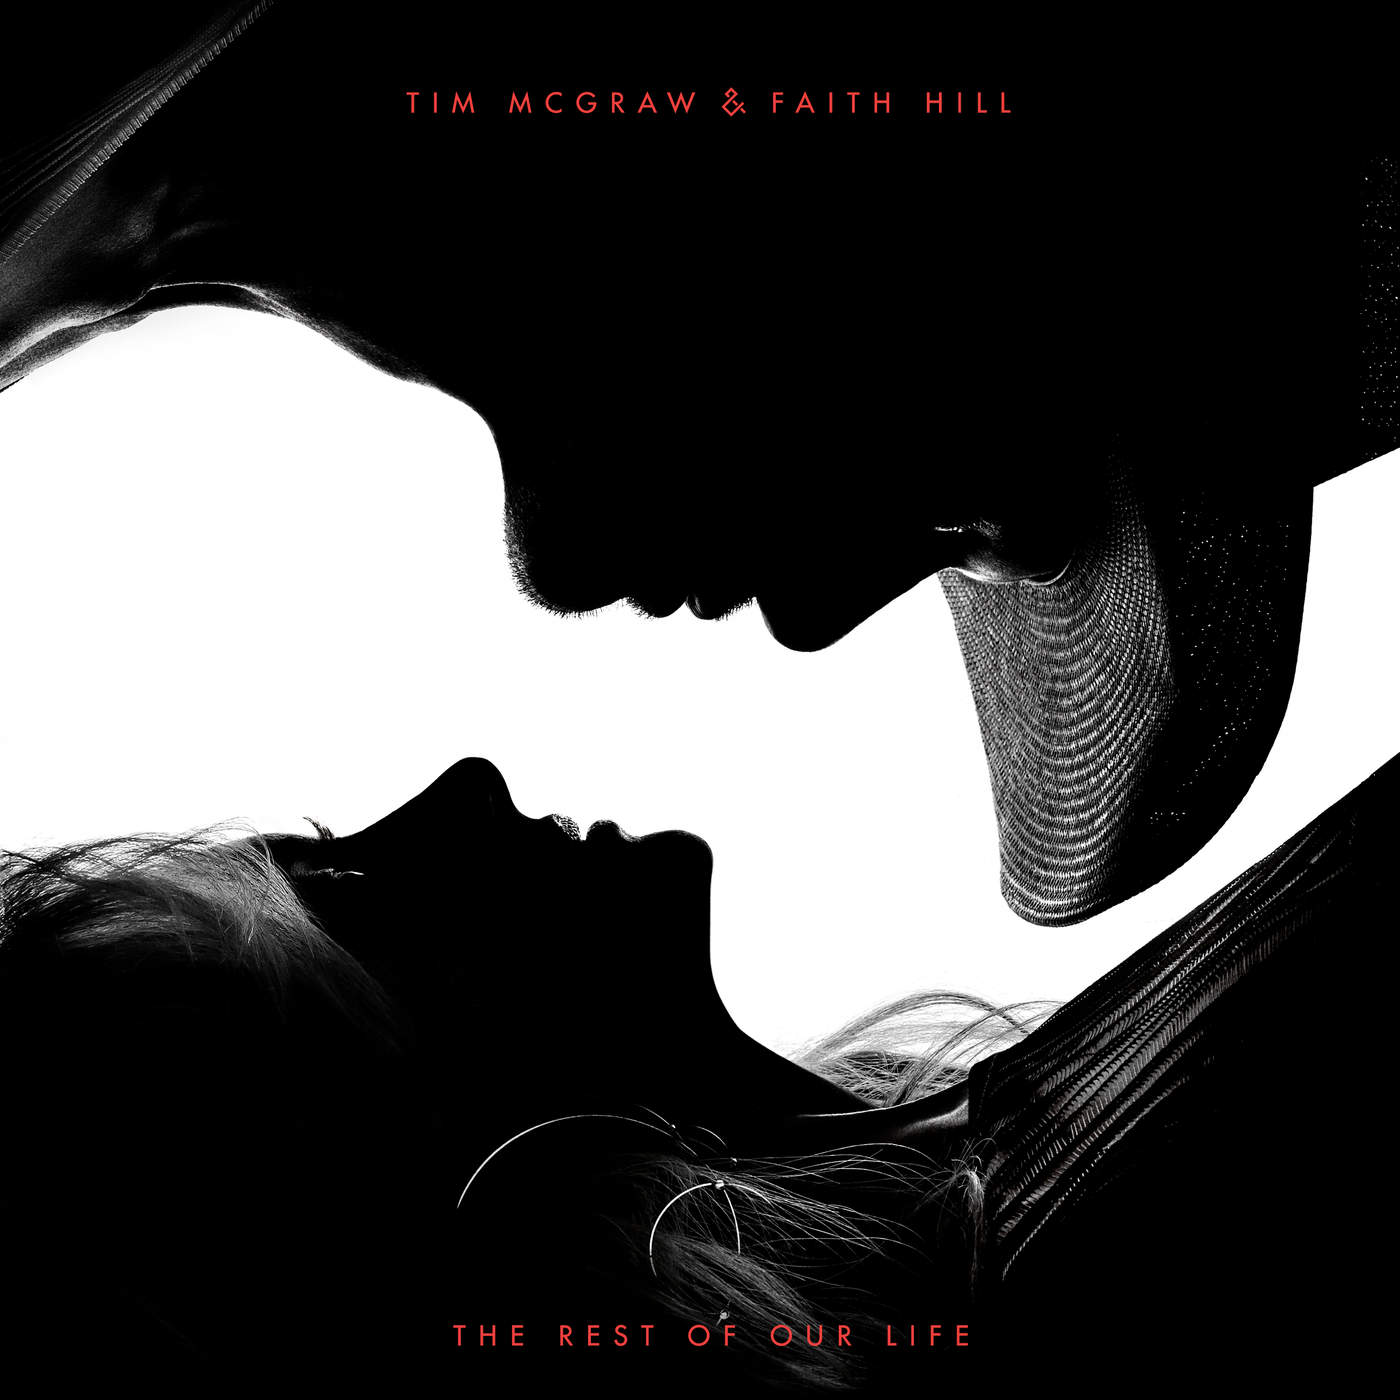 Tim McGraw & Faith Hill - The Rest of Our Life - Single